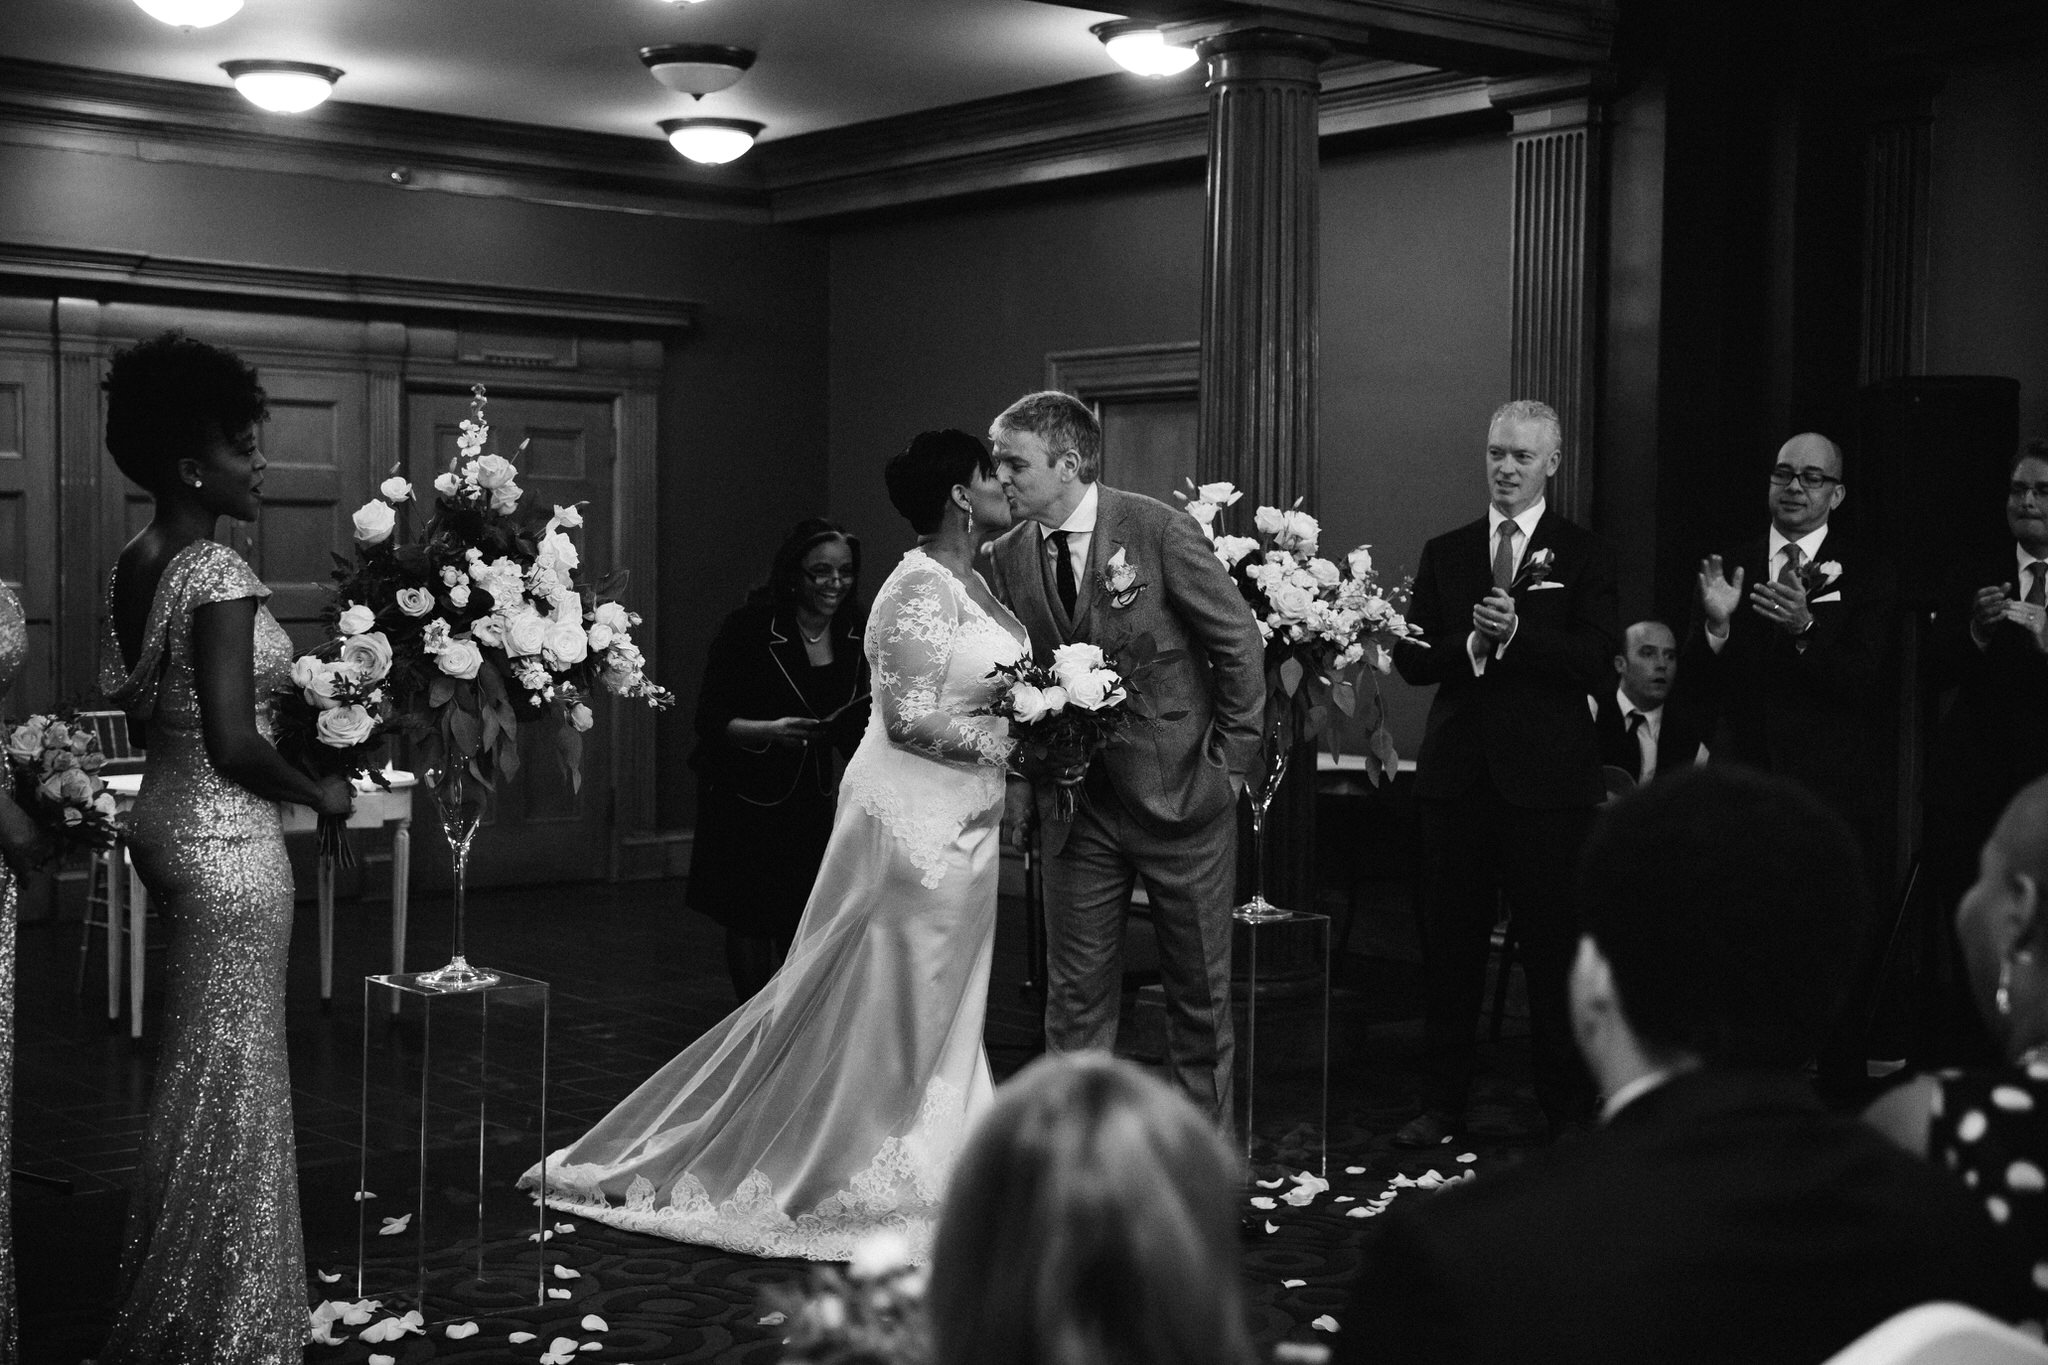 wedding photos one king west wedding cere